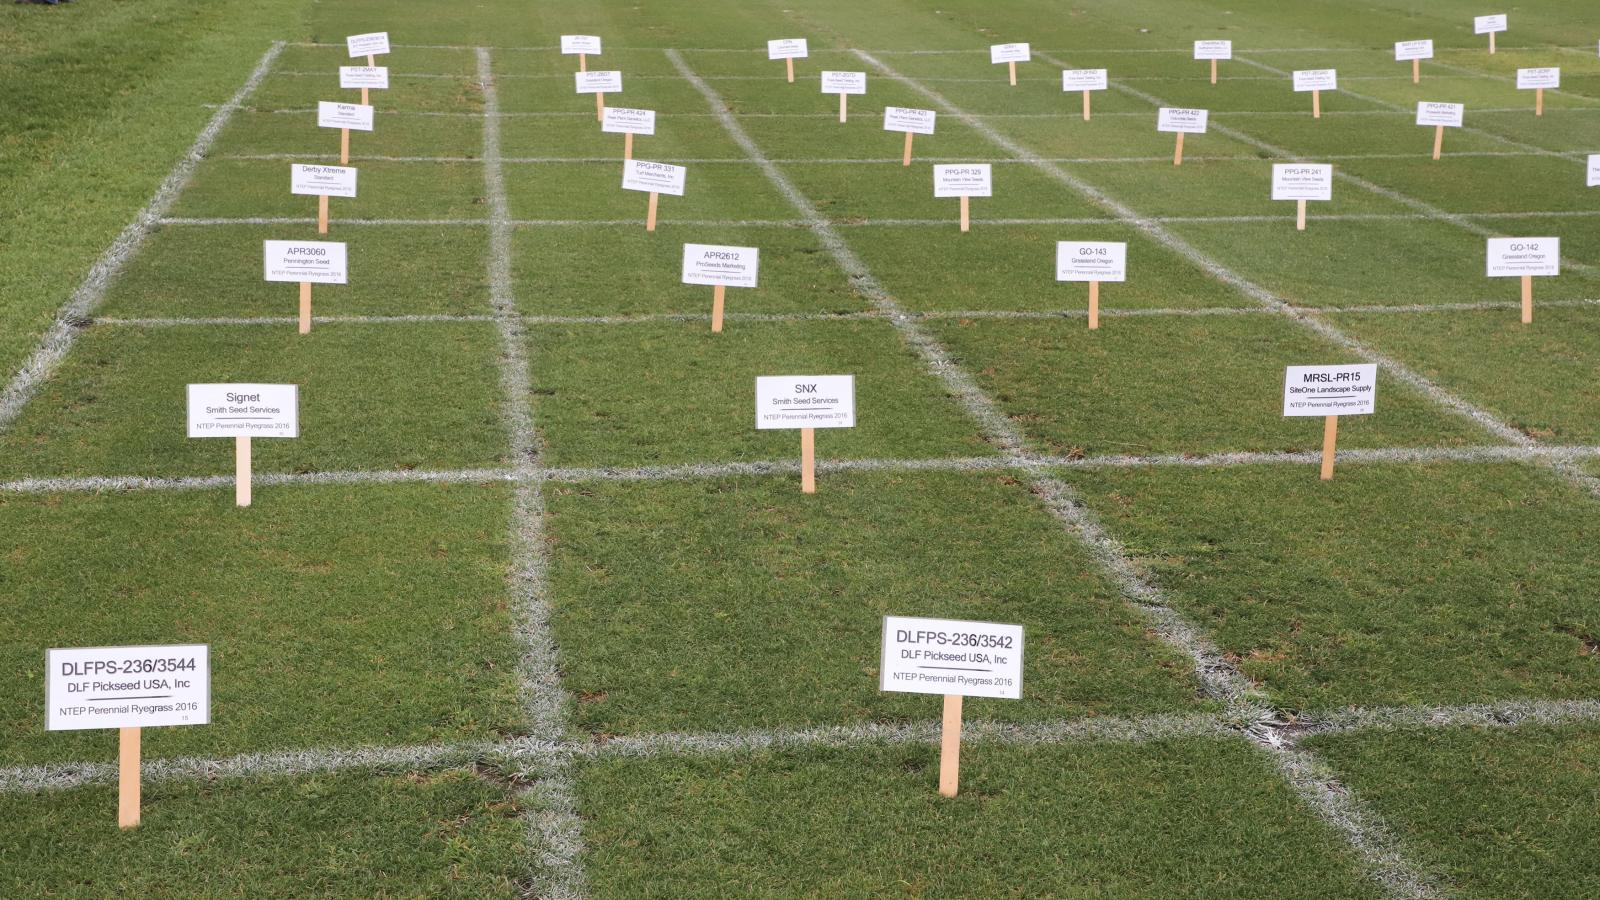 Turfgrass Research